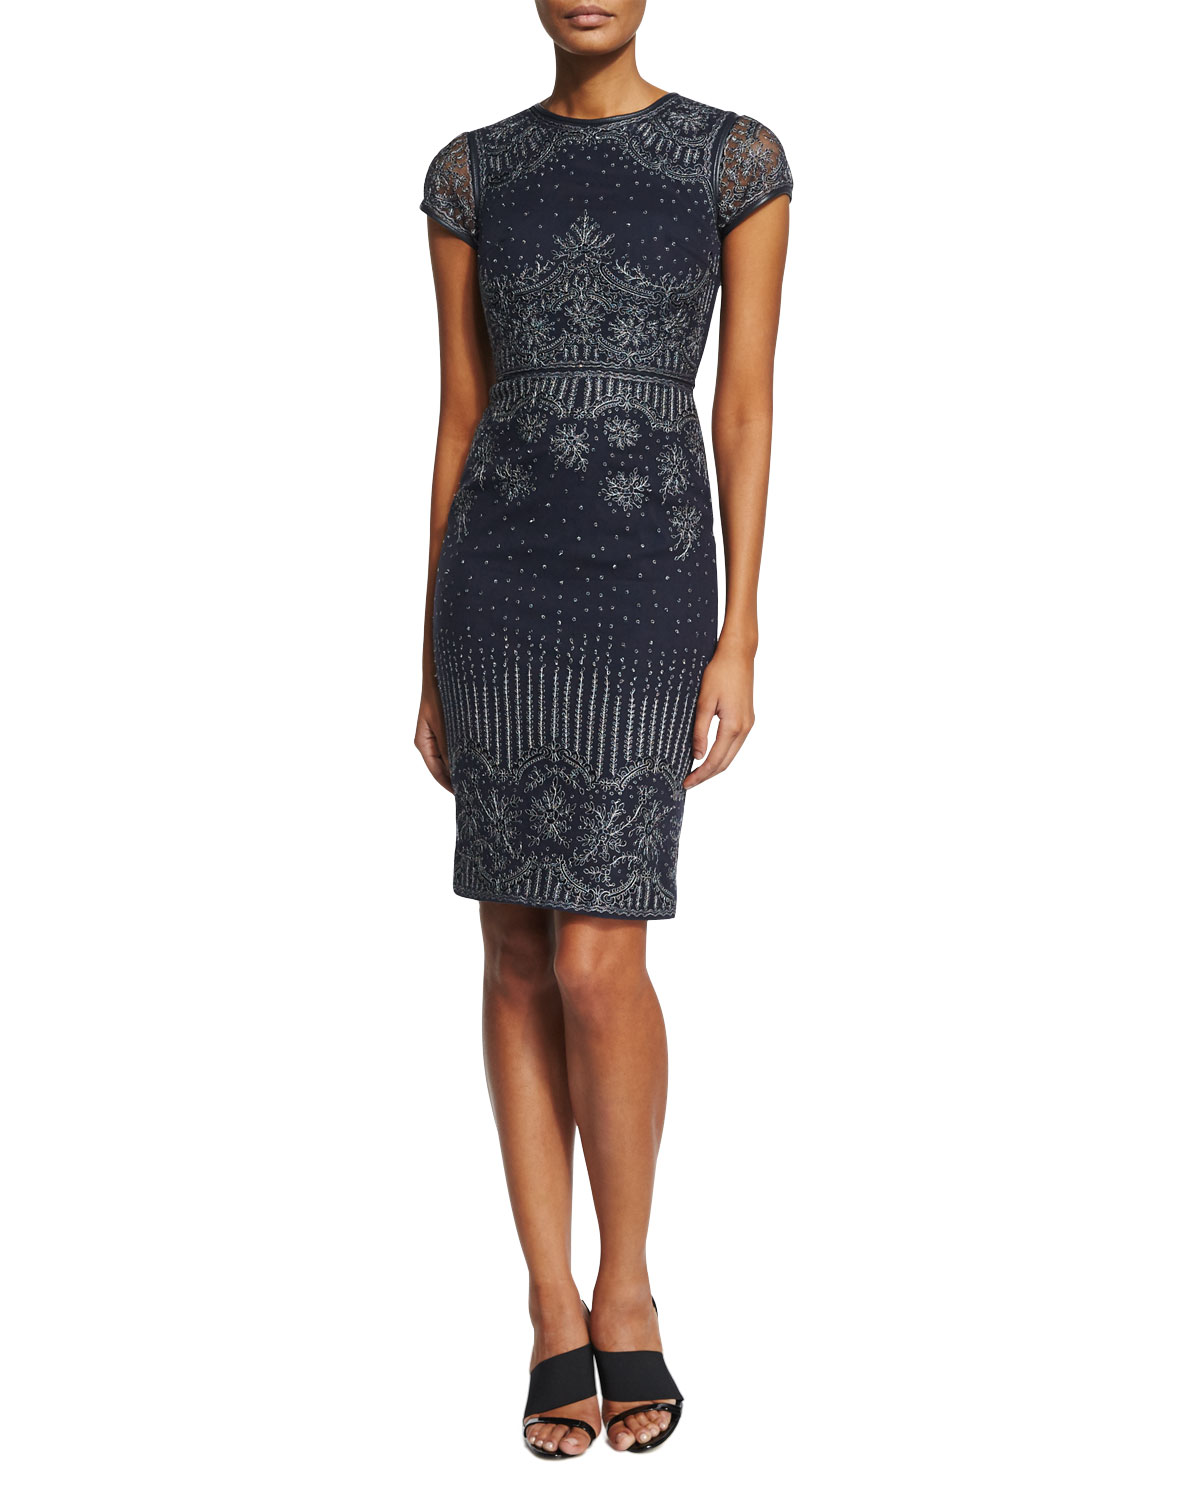 Carlotta Short-Sleeve Embroidered Cocktail Dress With Leather Trim